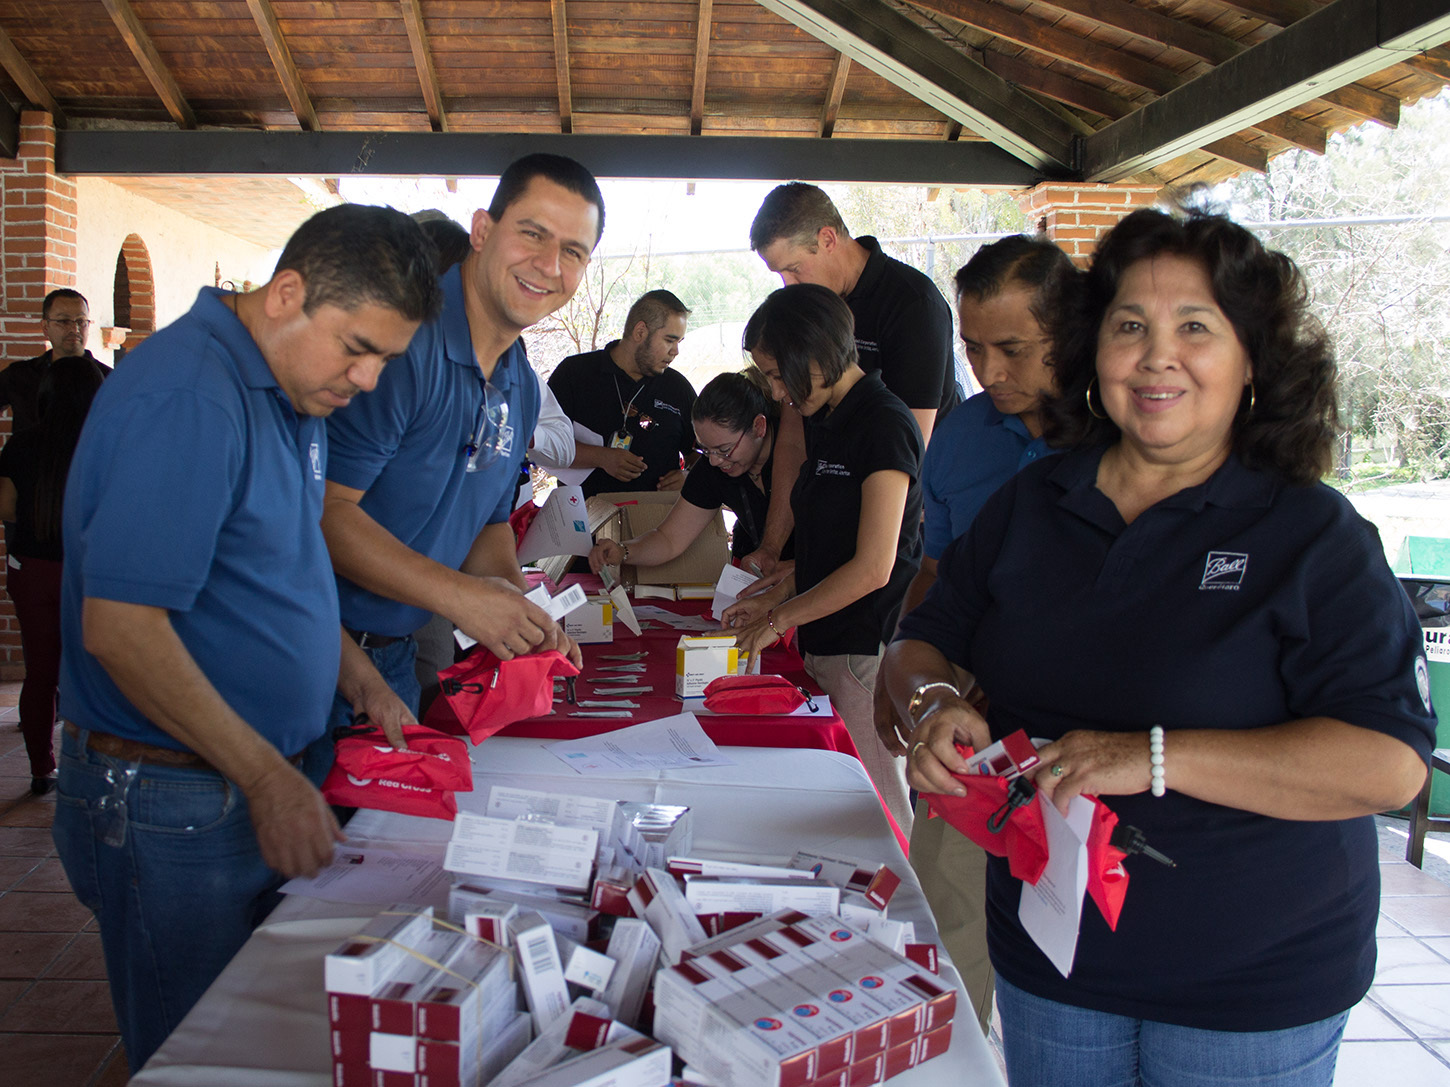 Ball employees from Queretaro, Mexico, and executives partnered together to build first aid kits for the Mexican Red Cross to distribute to those in need across the country.